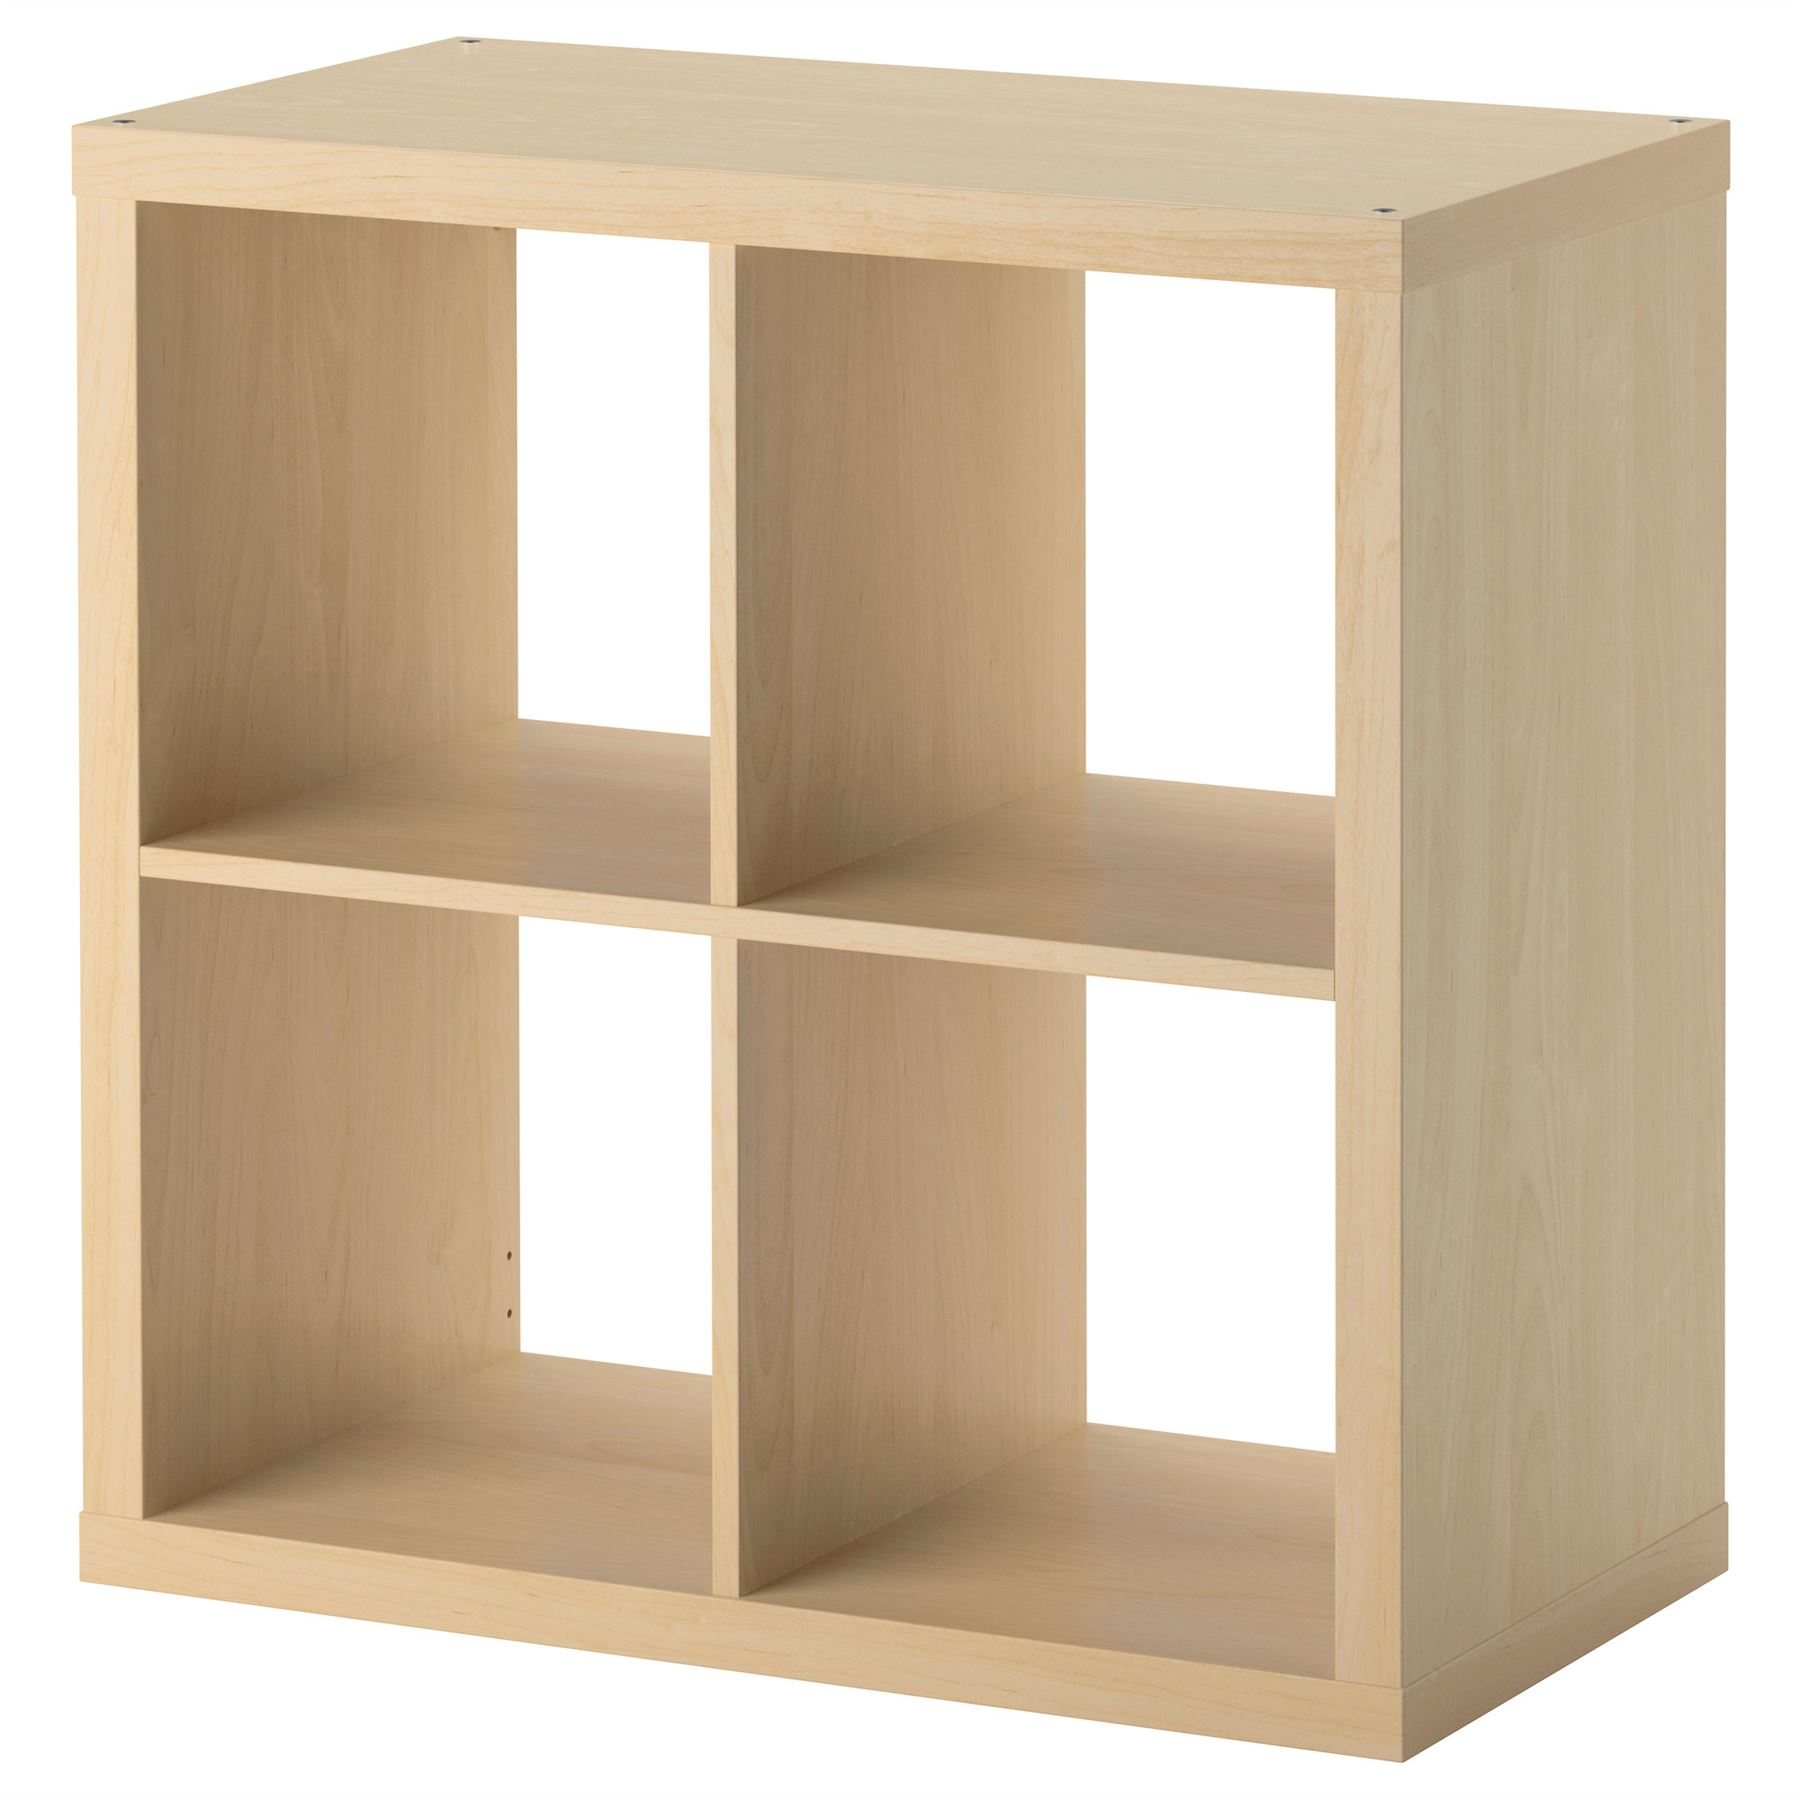 ikea kallax 4 cube storage bookcase square shelving unit